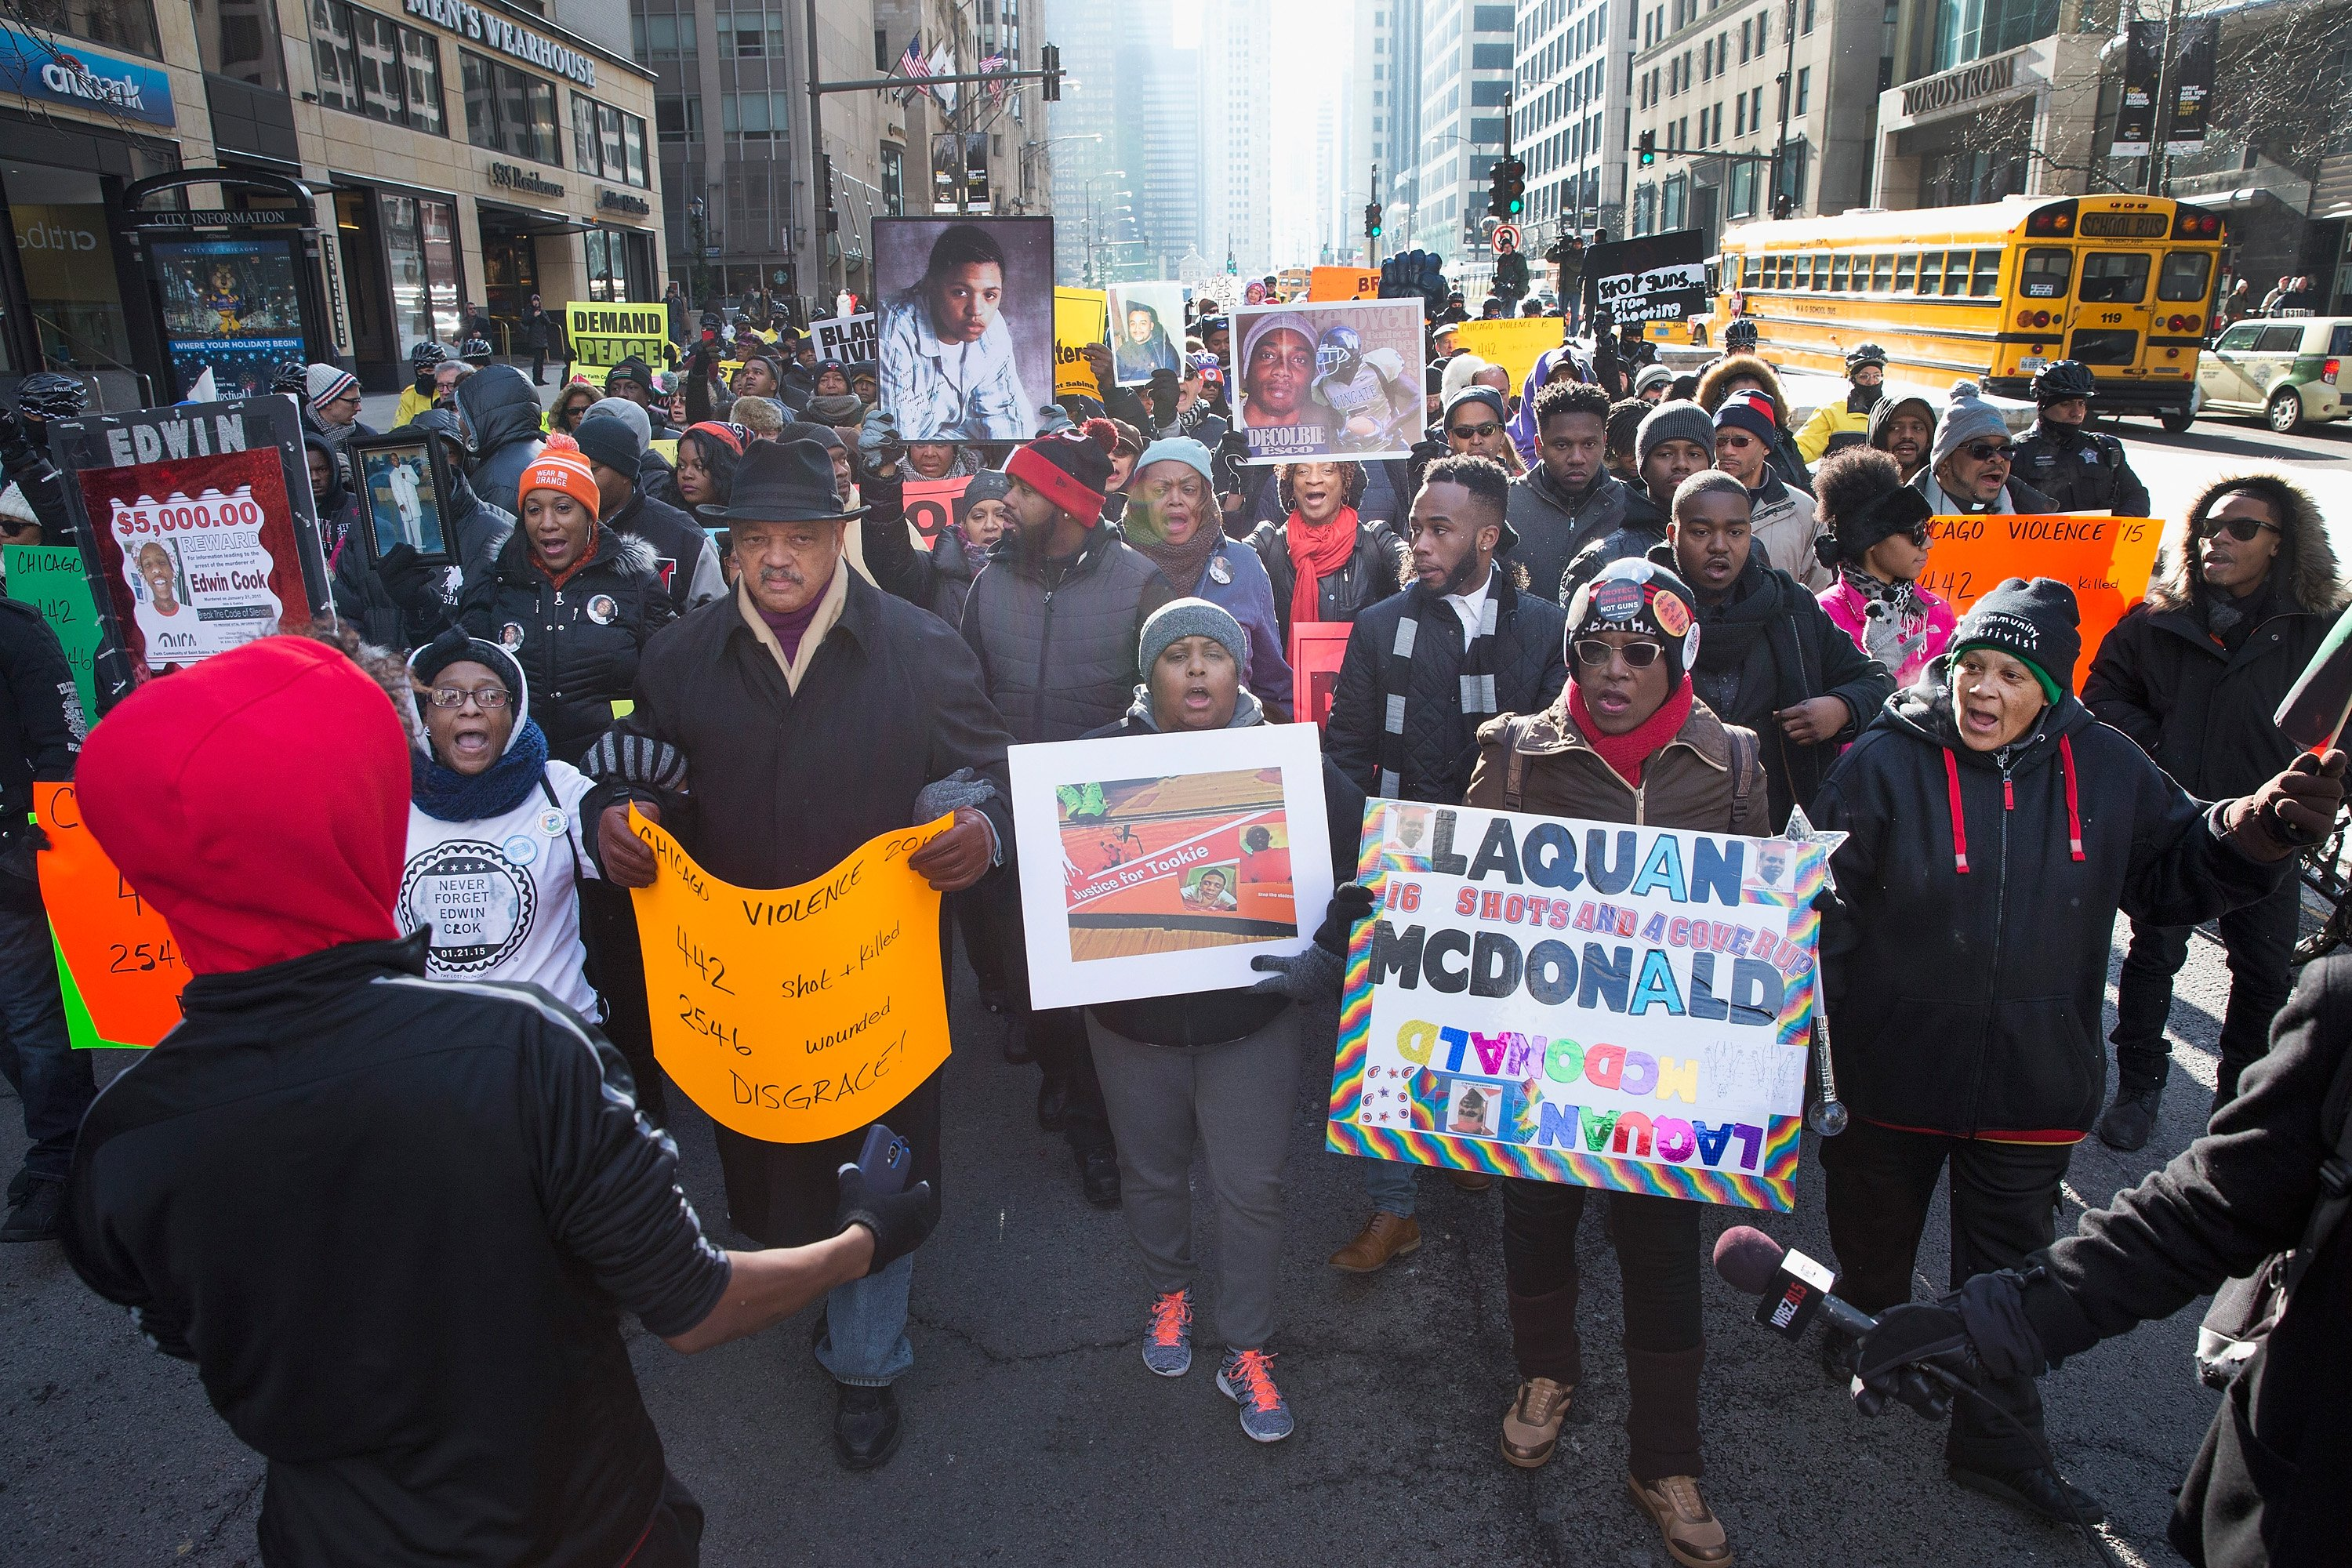 Rev. Jesse Jackson helps to lead demonstrators calling for an end to gun violence as they march through downtown Chicago on Dec. 31, 2015. The shooting deaths by police of a 19-year-old college student Quintonio LeGrier and his 55-year-old neighbor Bettie Jones and a recently released video showing the shooting of 17-year-old Laquan McDonald by Chicago Police officer Jason Van Dyke have sparked dozens of protests in the city.